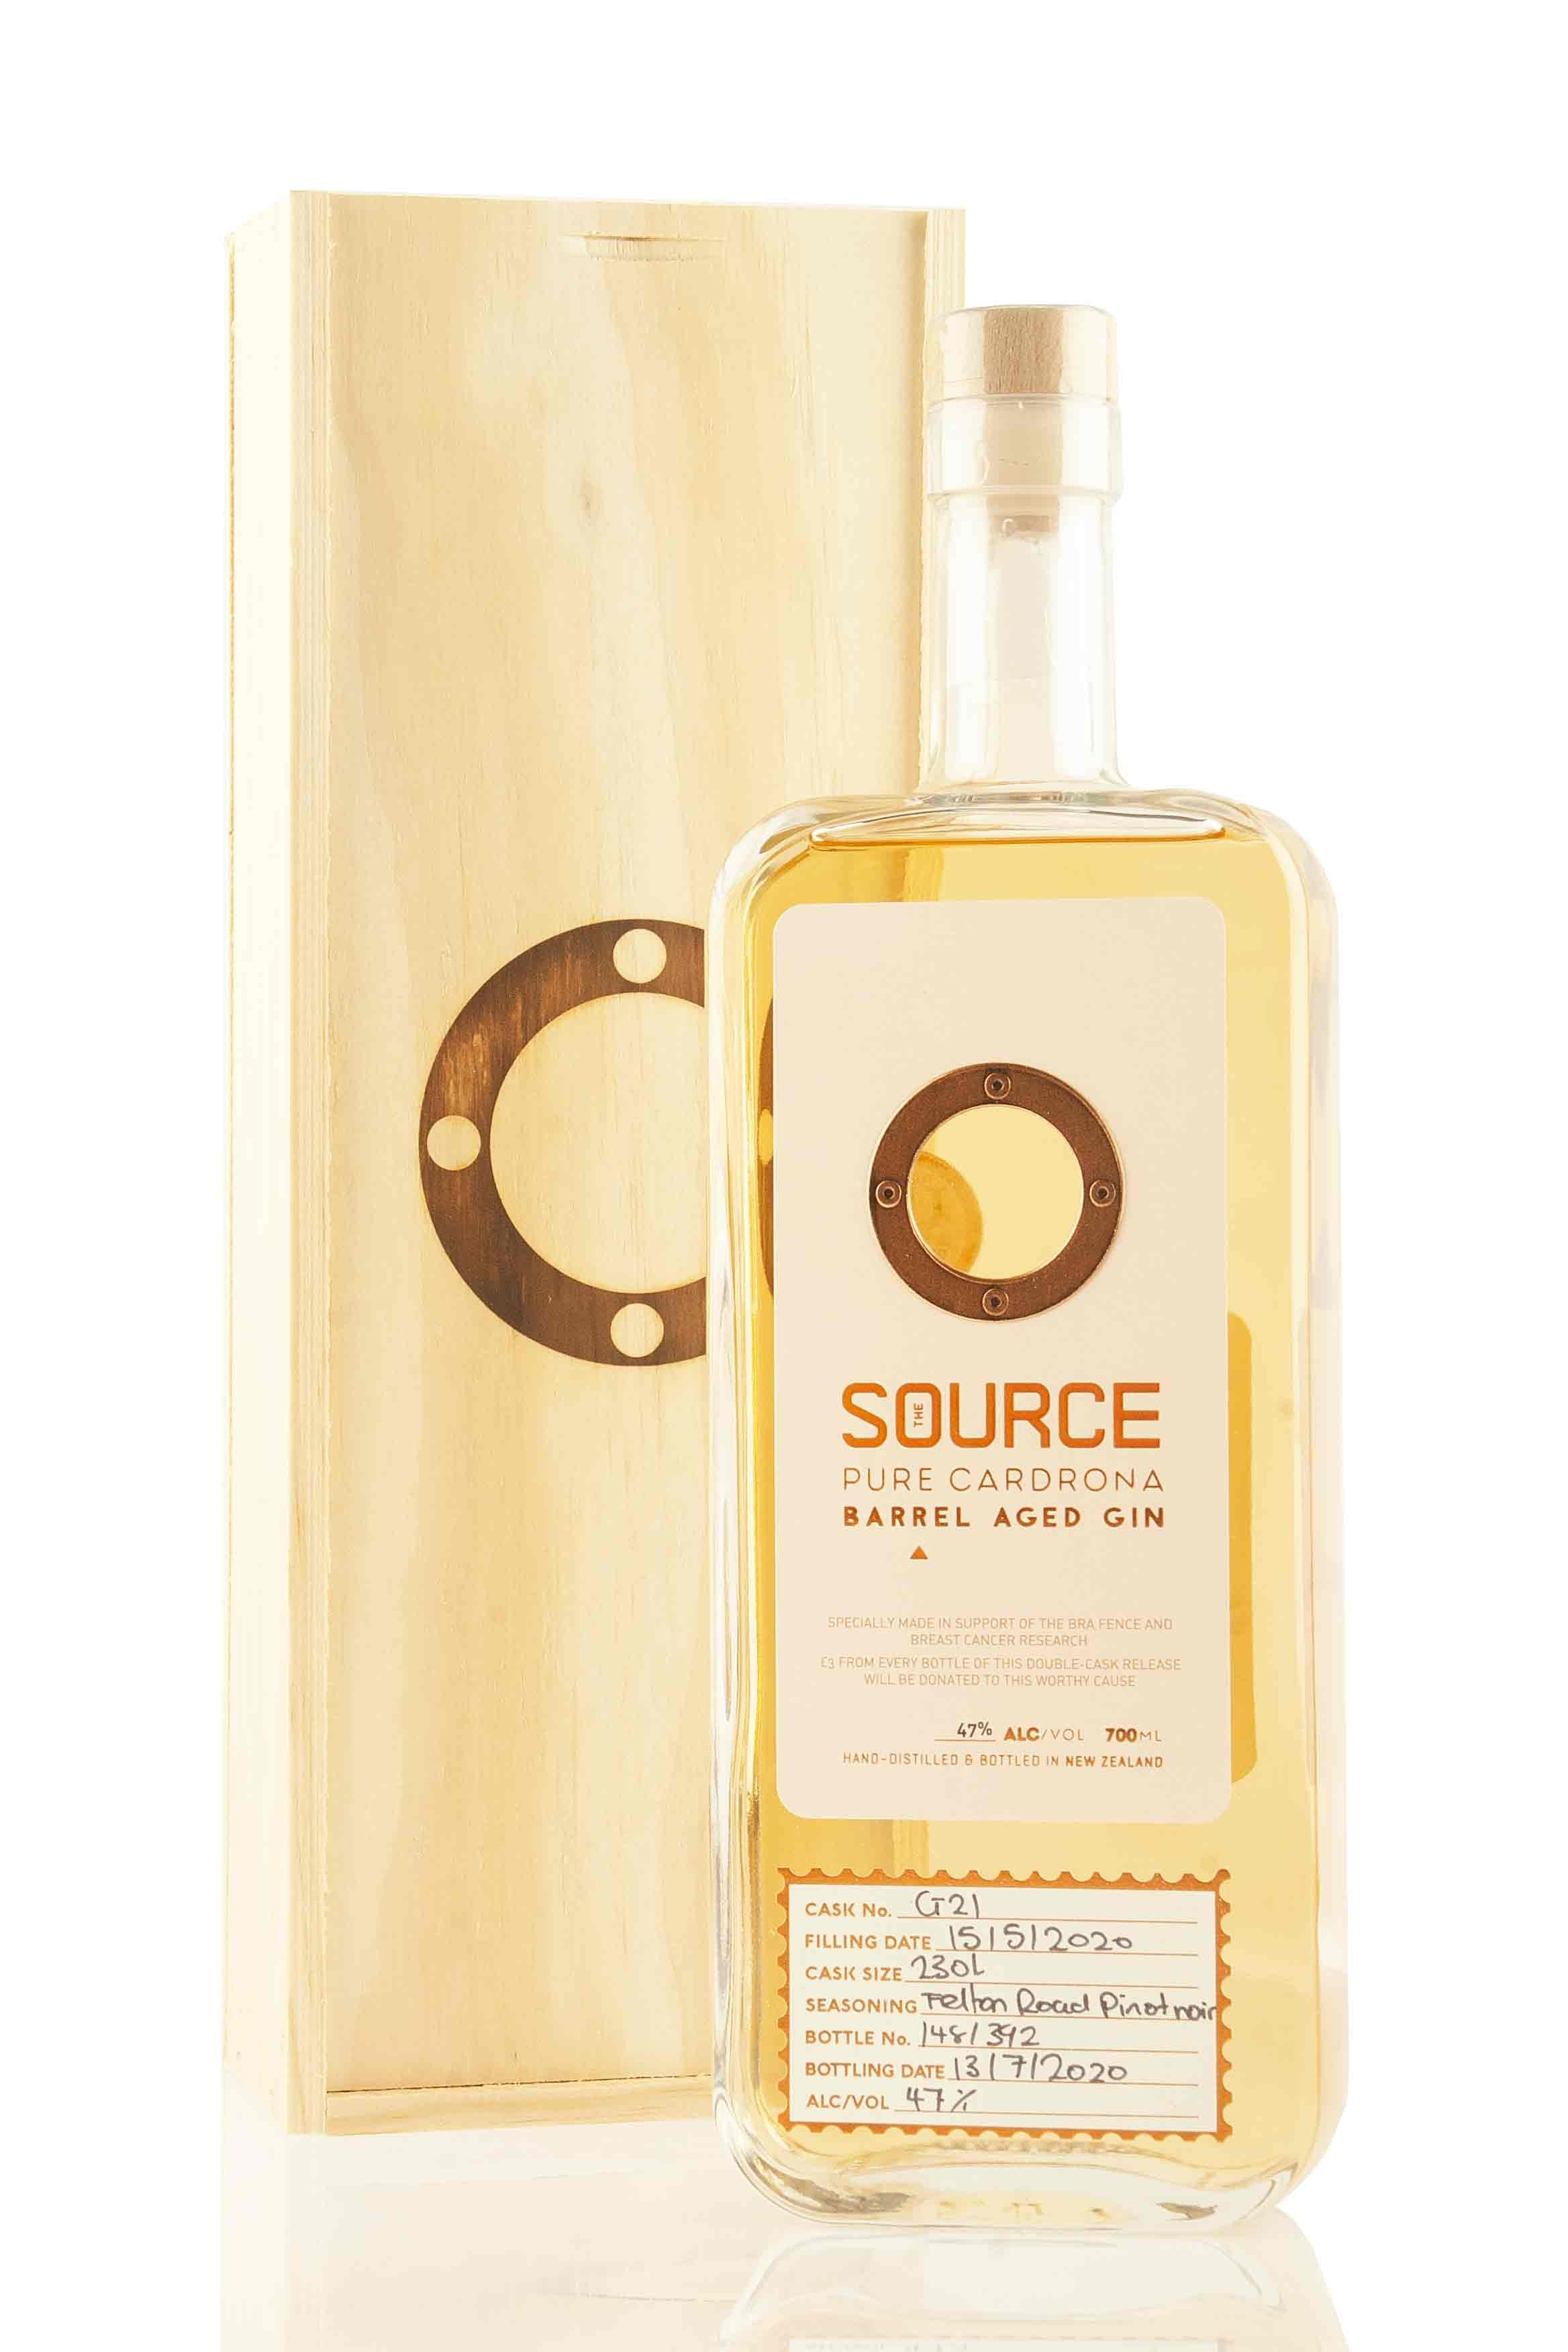 The Source Barrel Aged Pink Gin | Cardrona Distillery